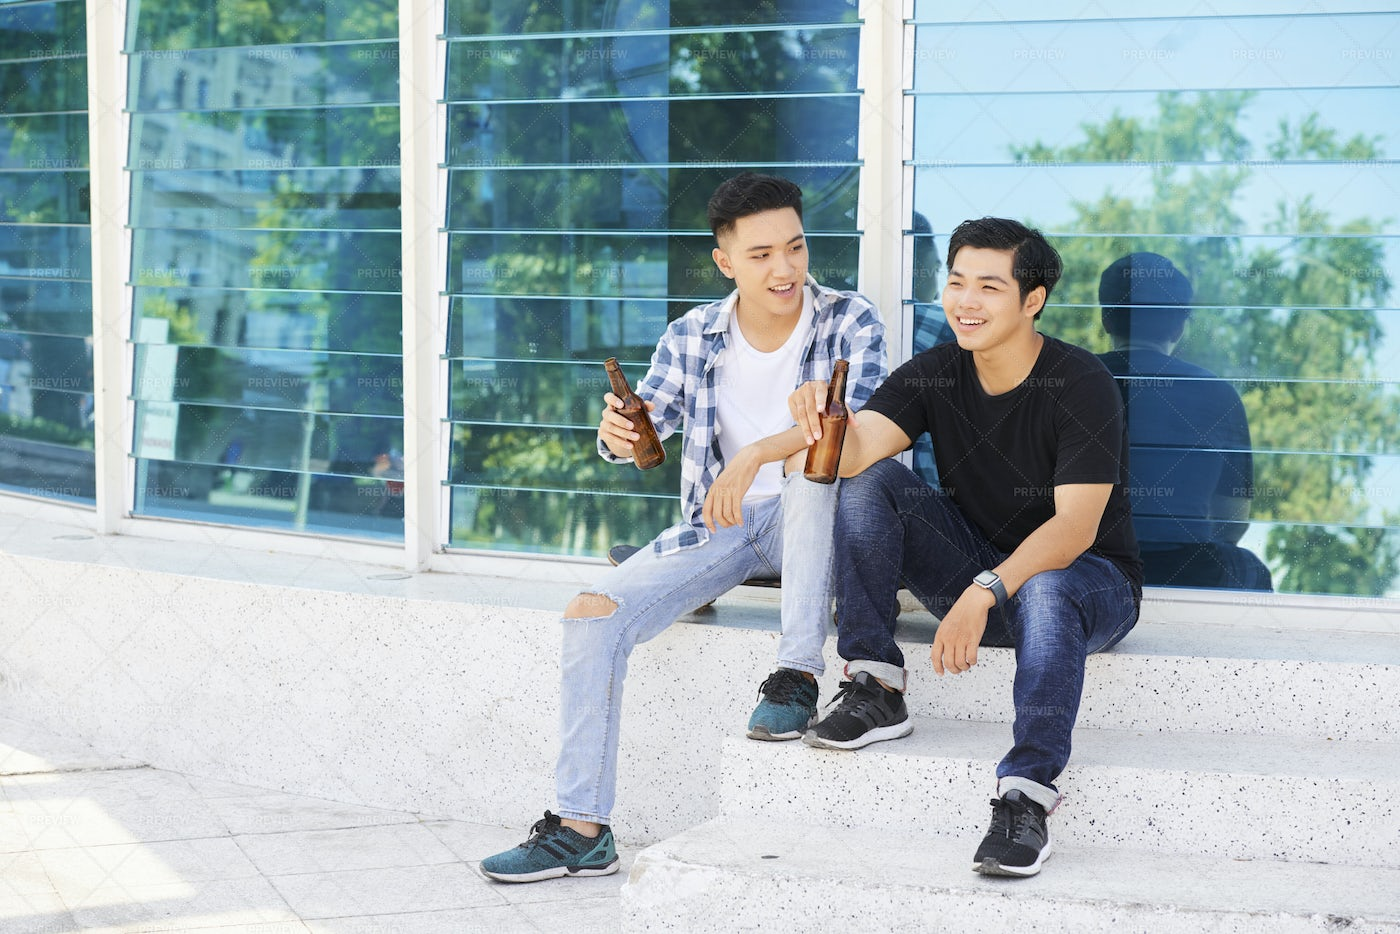 Teenagers Resting Outdoors With Beer: Stock Photos